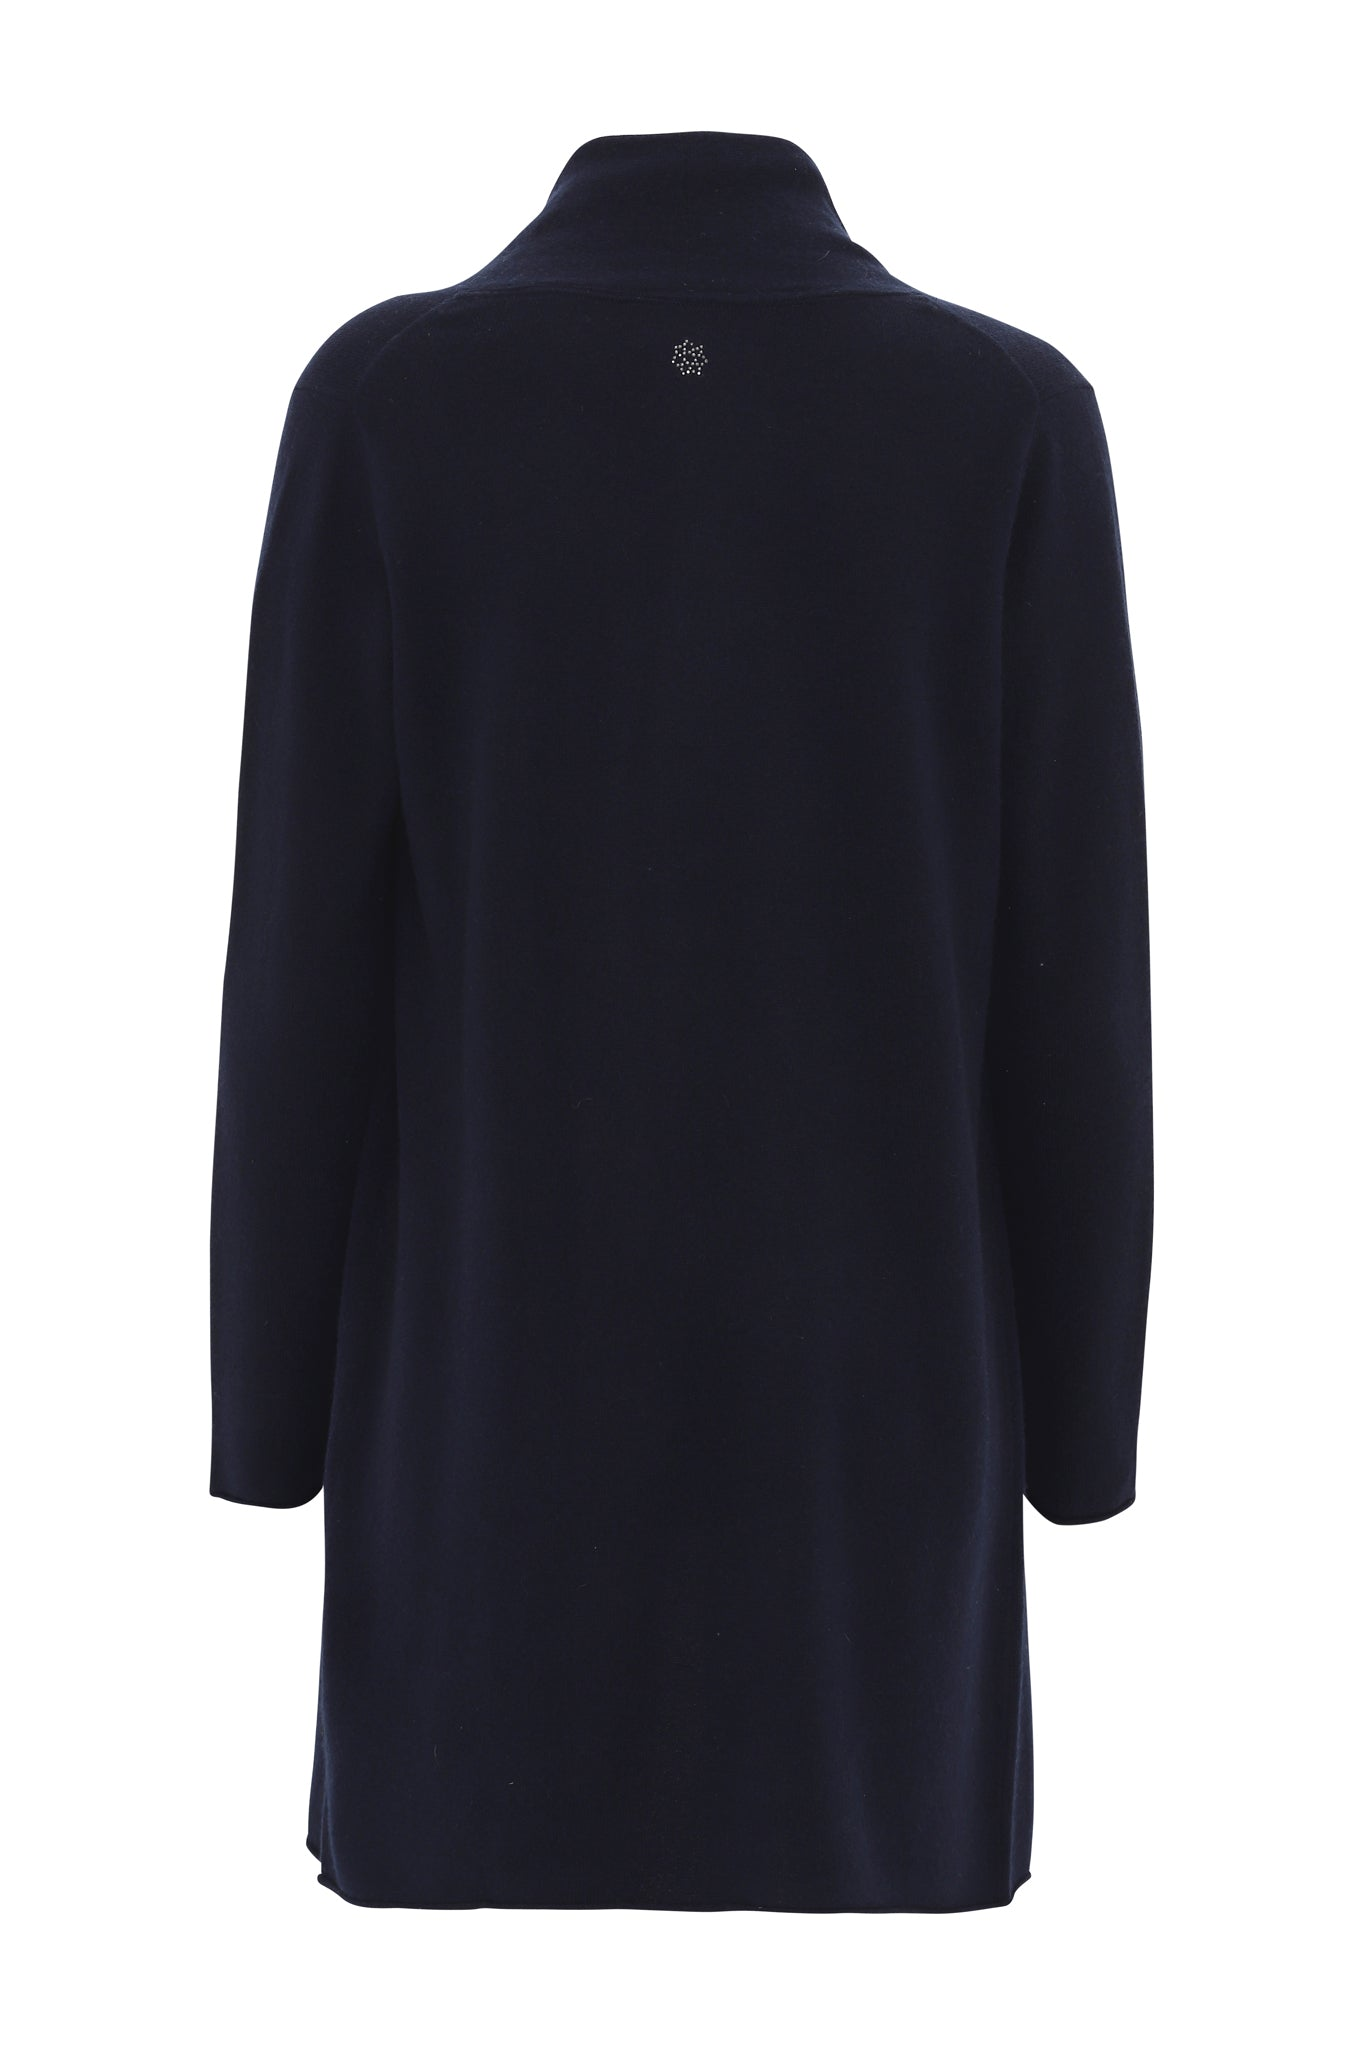 Ingrid - cashmere cardigan - Dark Navy